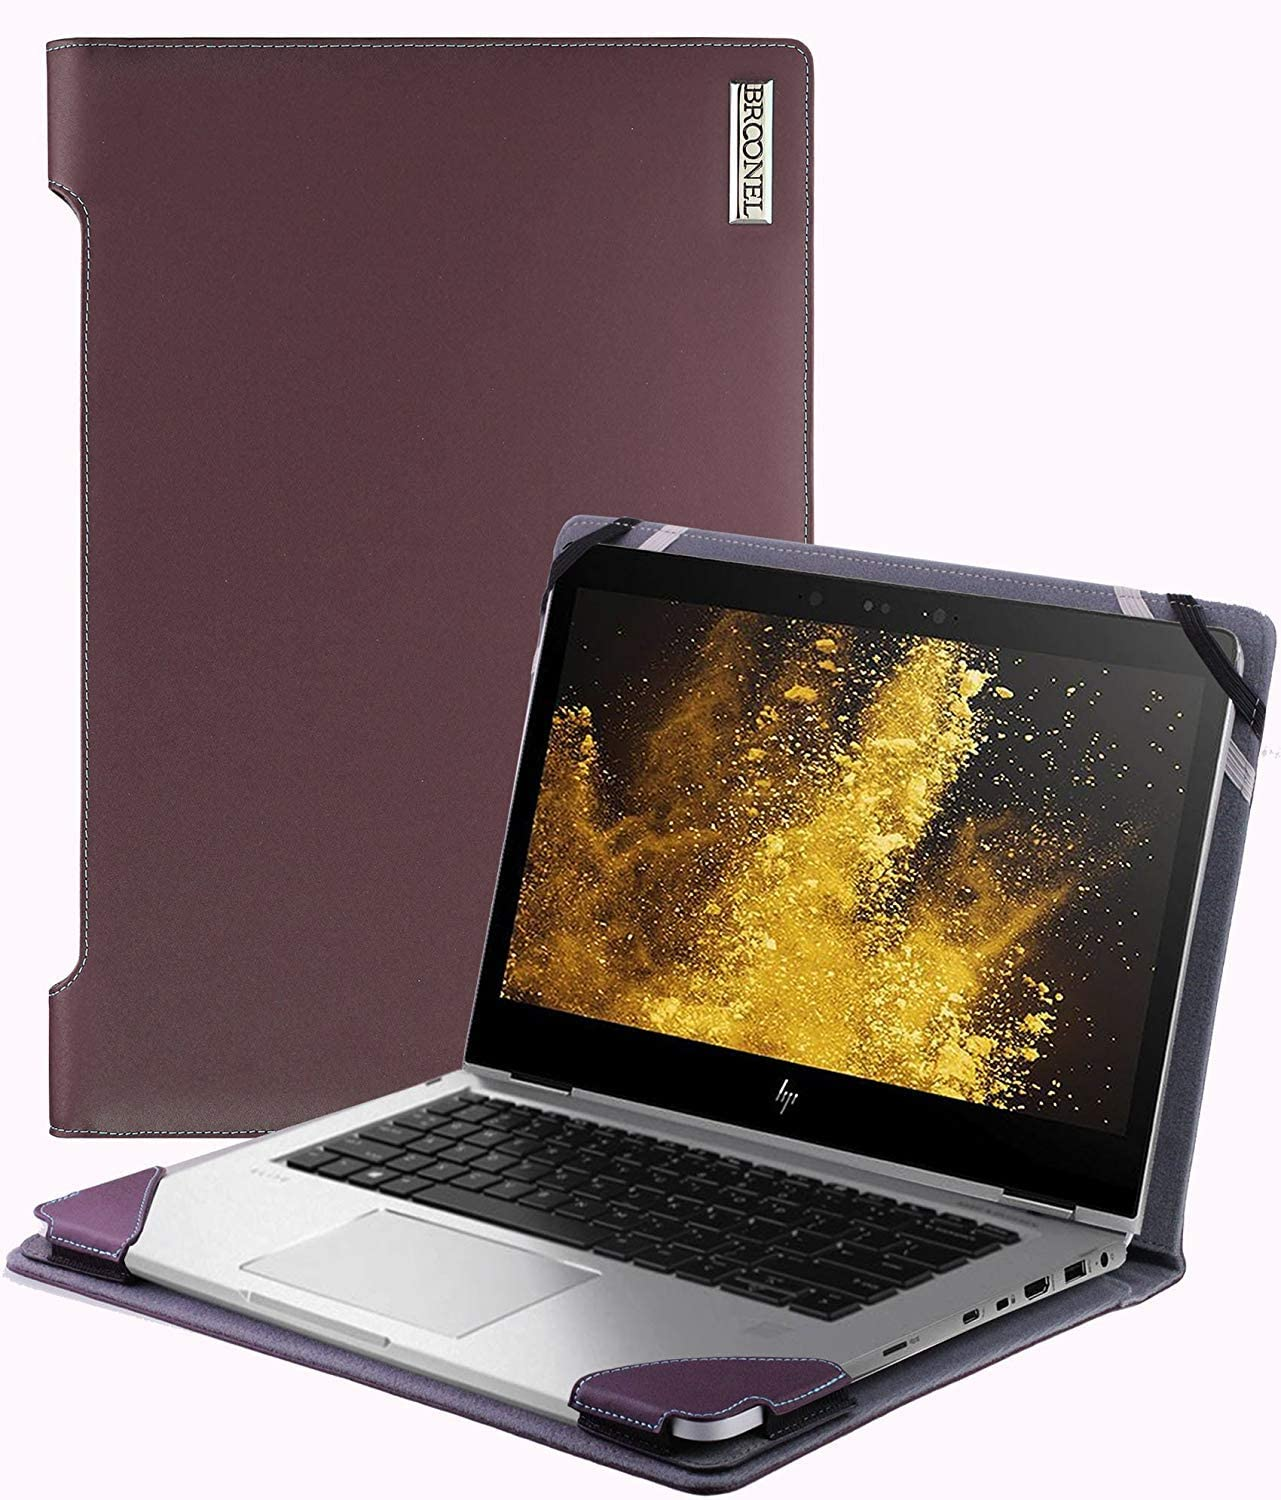 Broonel - Profile Series - Purple Leather Laptop Case Compatible with The HP EliteBook x360 830 G6 Notebook PC